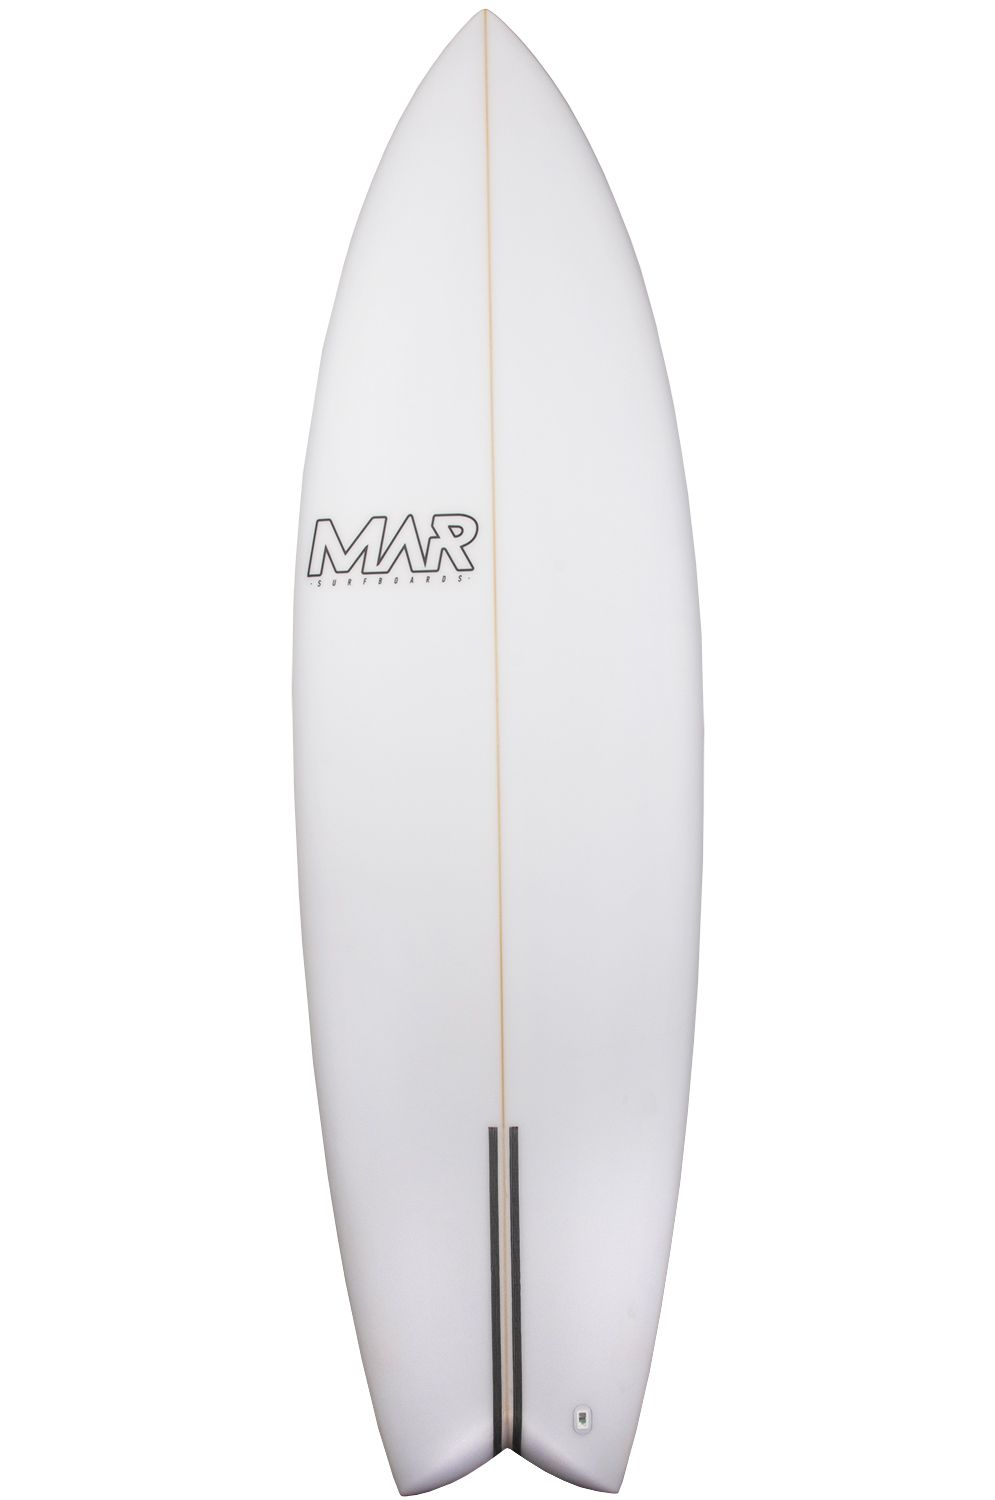 Mar Surf Board 6'0 THE 4 PU Fish Tail - White FCS II Multisystem 6ft0